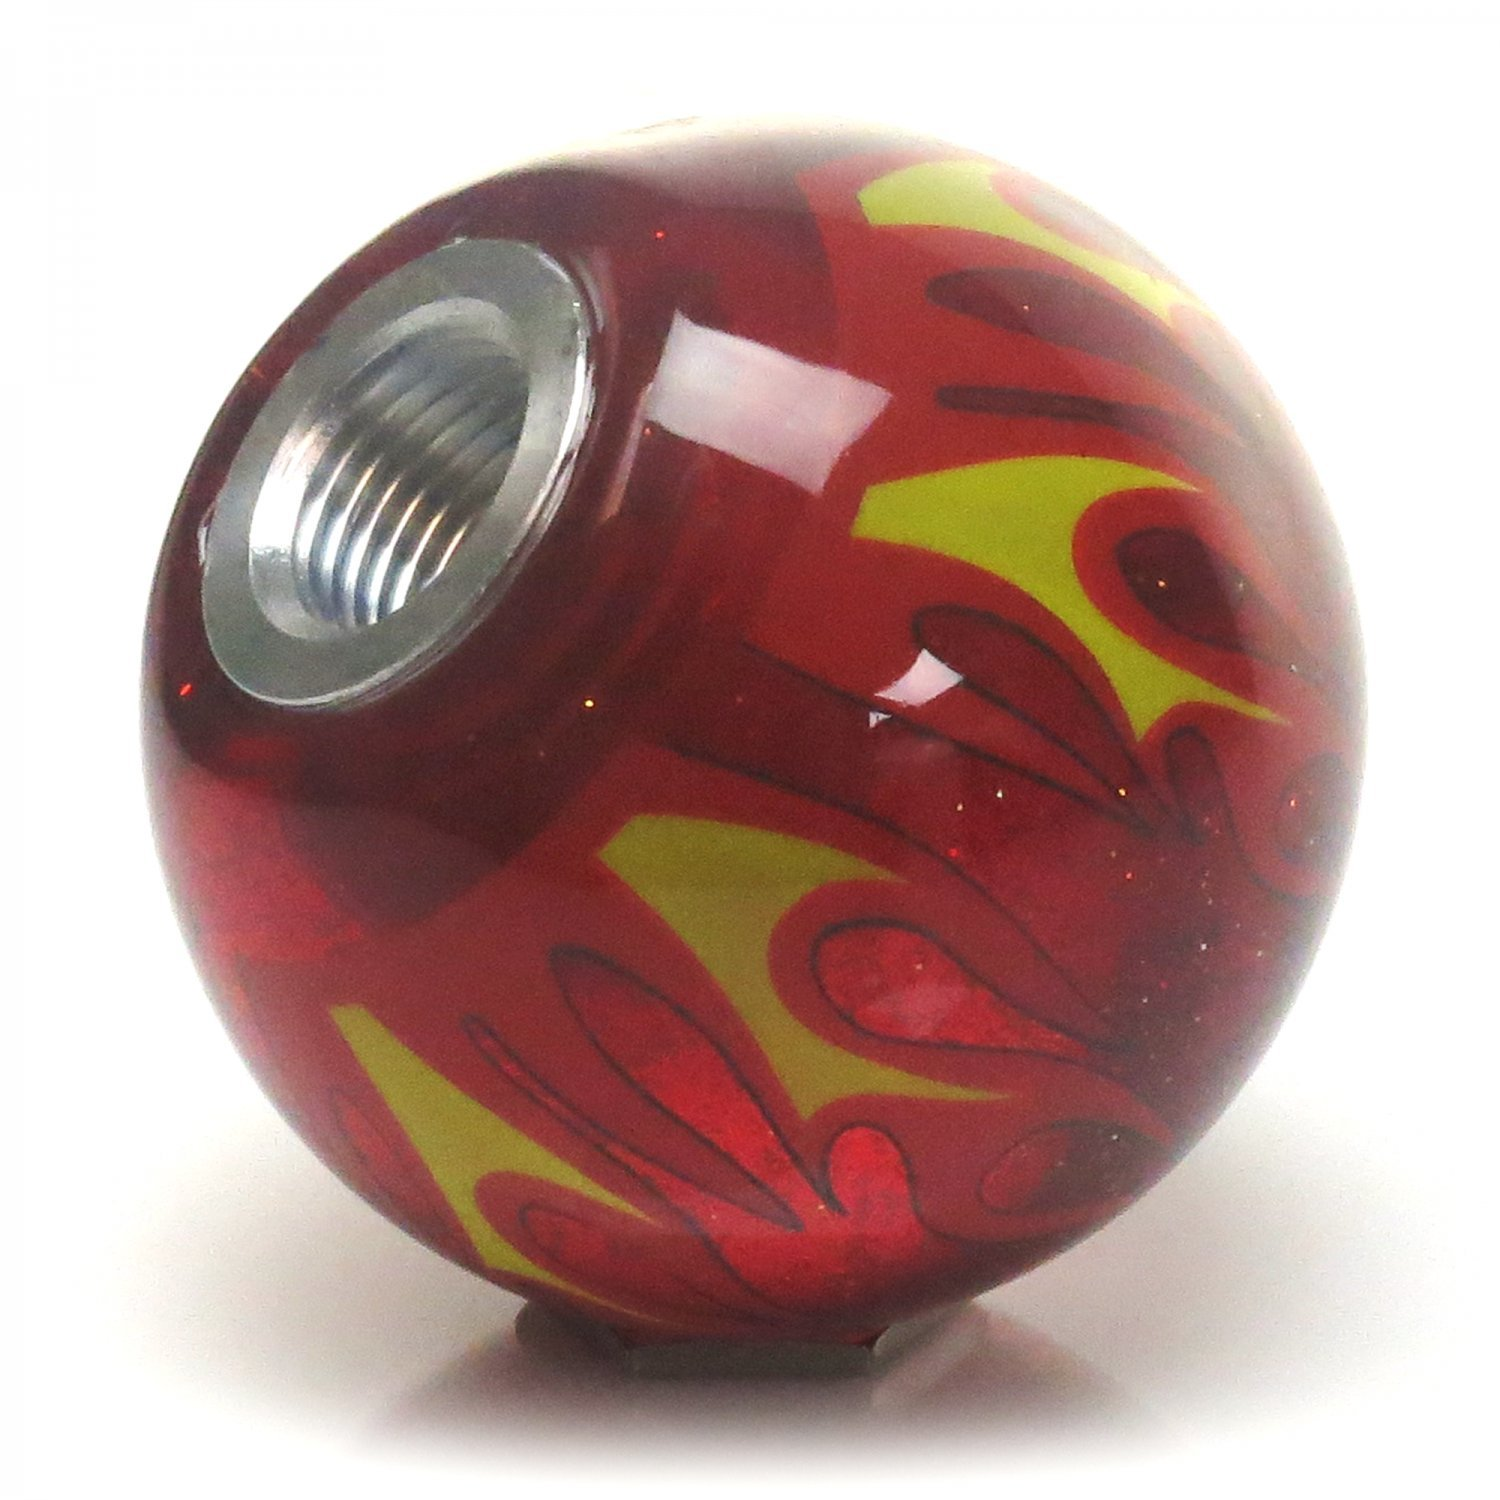 American Shifter 297042 Shift Knob Orange JDM Band-Aid Single Red Flame Metal Flake with M16 x 1.5 Insert